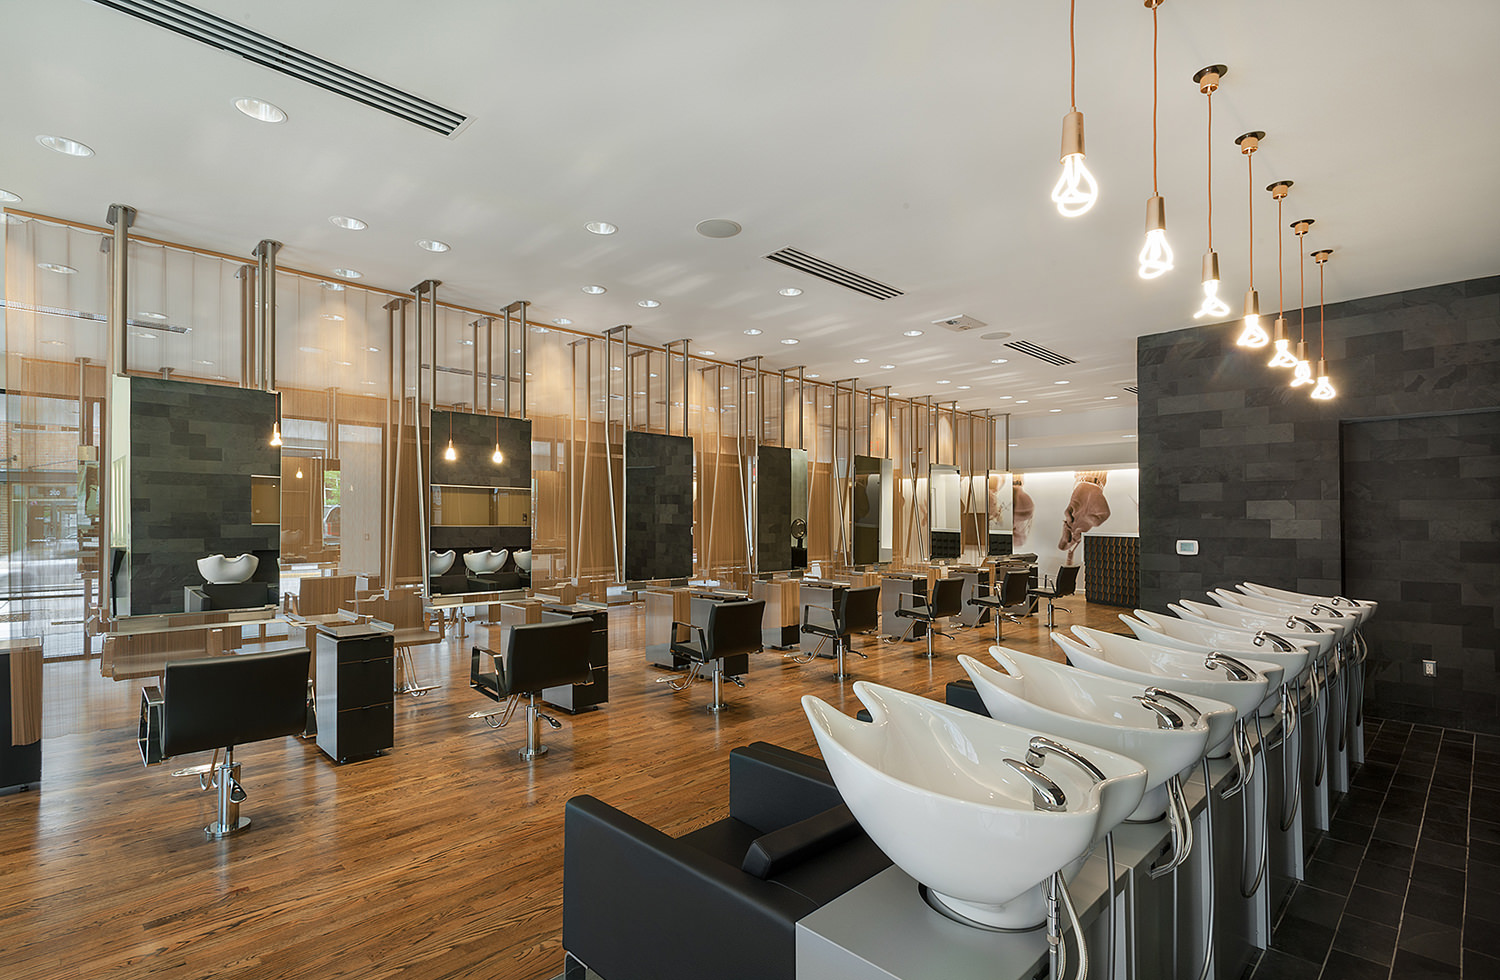 Tips for Selecting Stylish and Quality Salon Equipment and Furniture